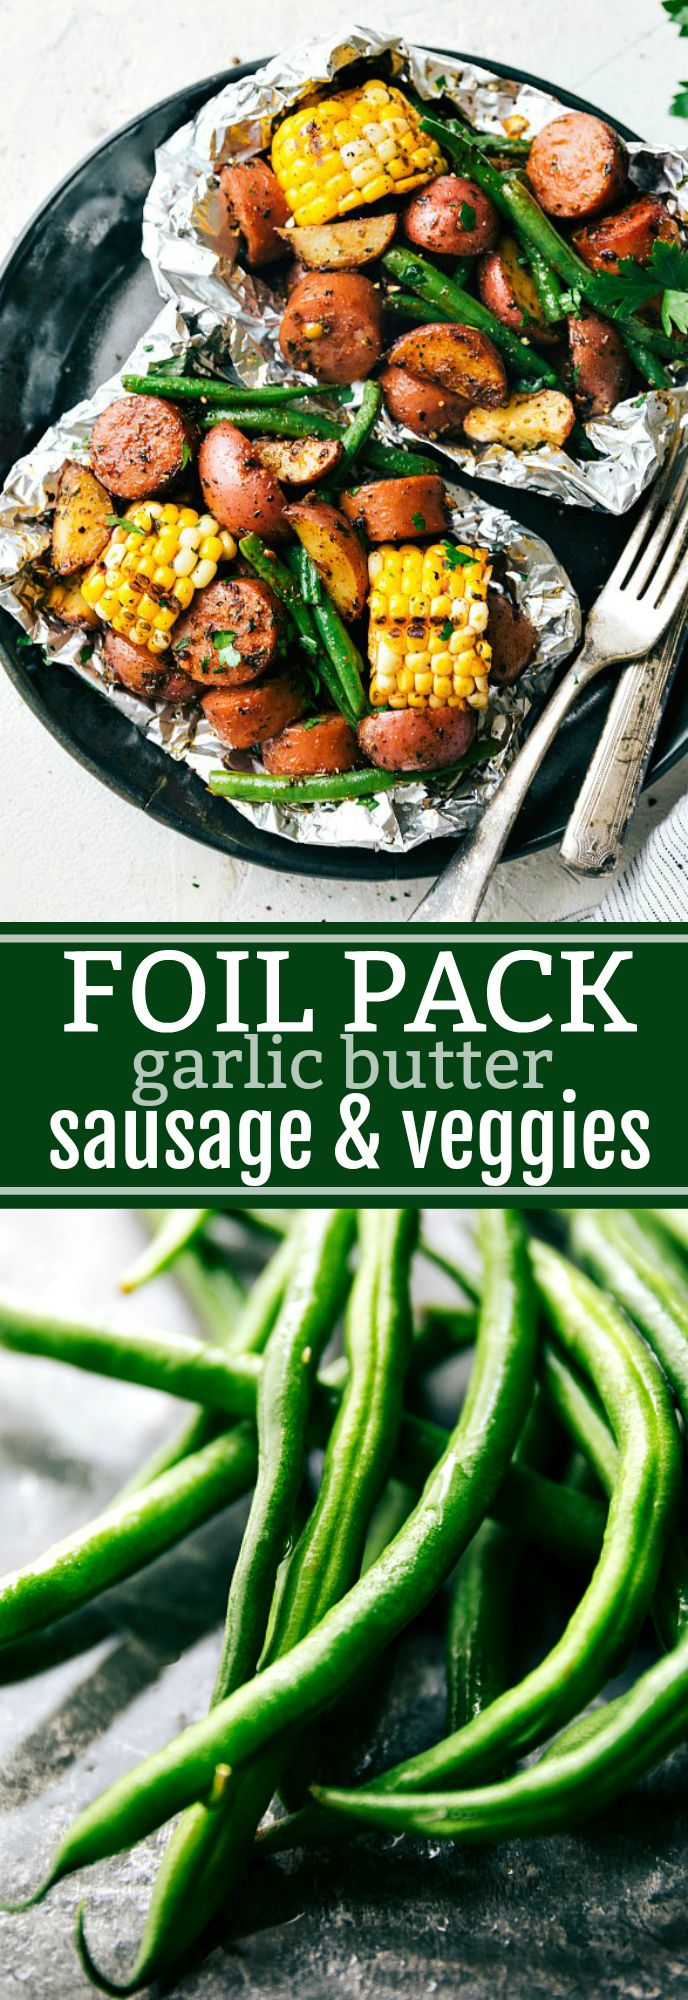 Foil Pack Sausage and Veggies! Easy Tin Foil Pack Garlic Butter Sausage and Veggies. A delicious meal that takes 15 minutes prep time or less! via chelseasmessyapron.com<img src=